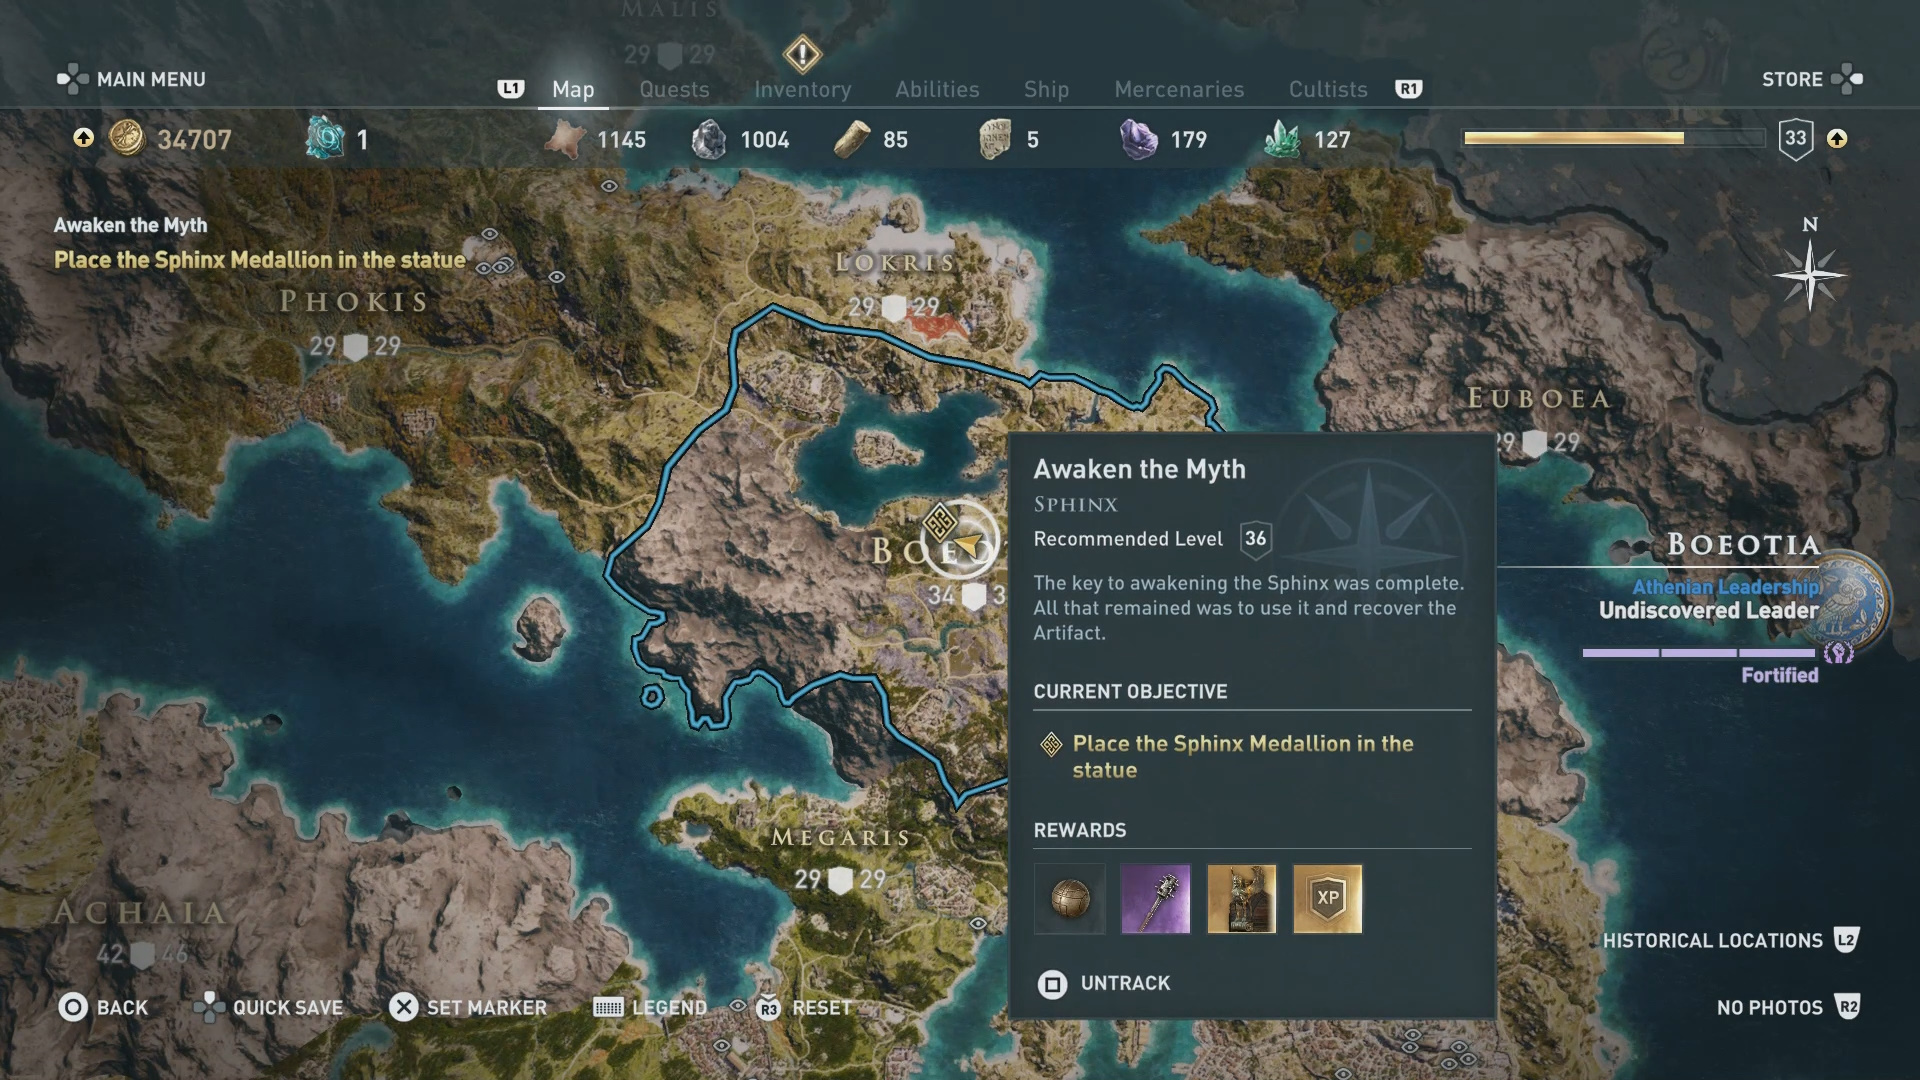 How to Solve the Sphinx's Riddles - Assassin's Creed Odyssey